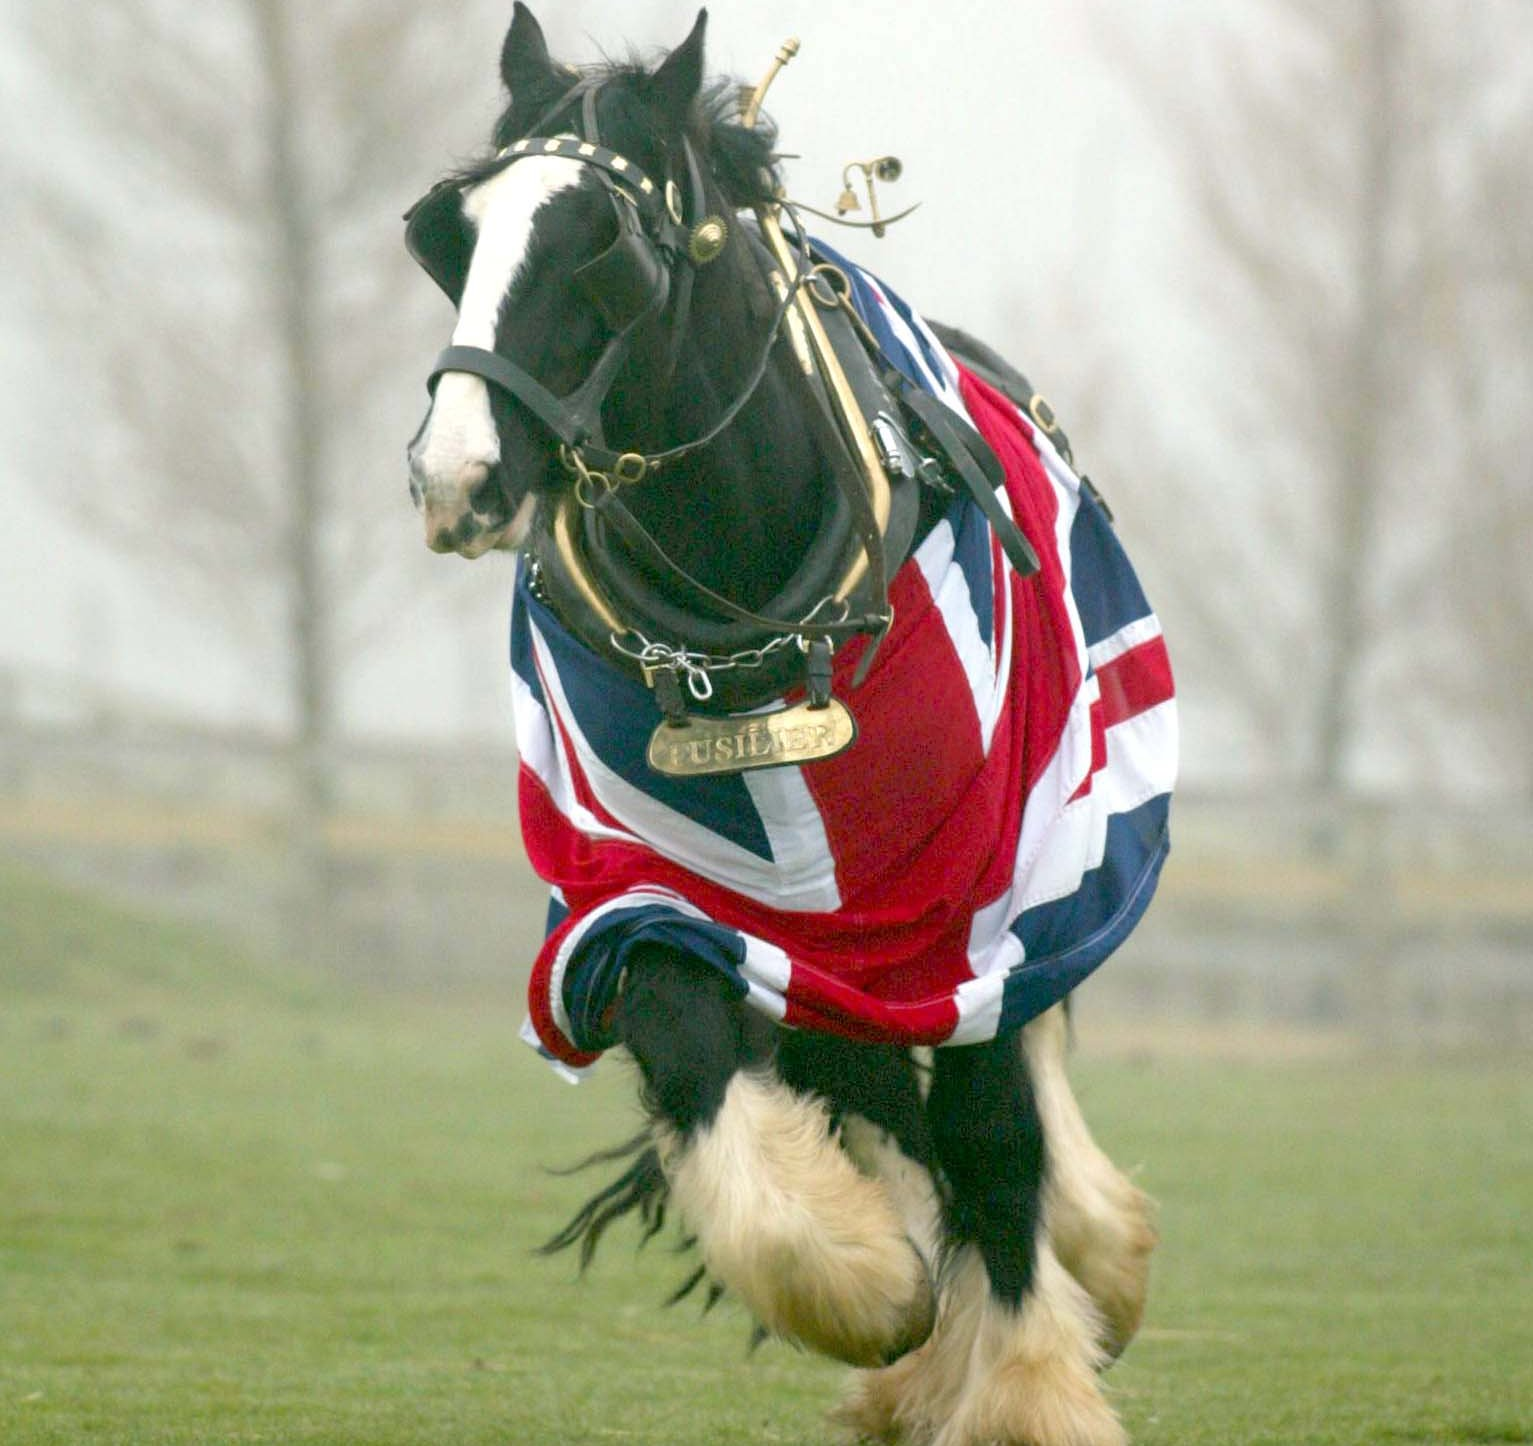 Fusilier the Shire Horse